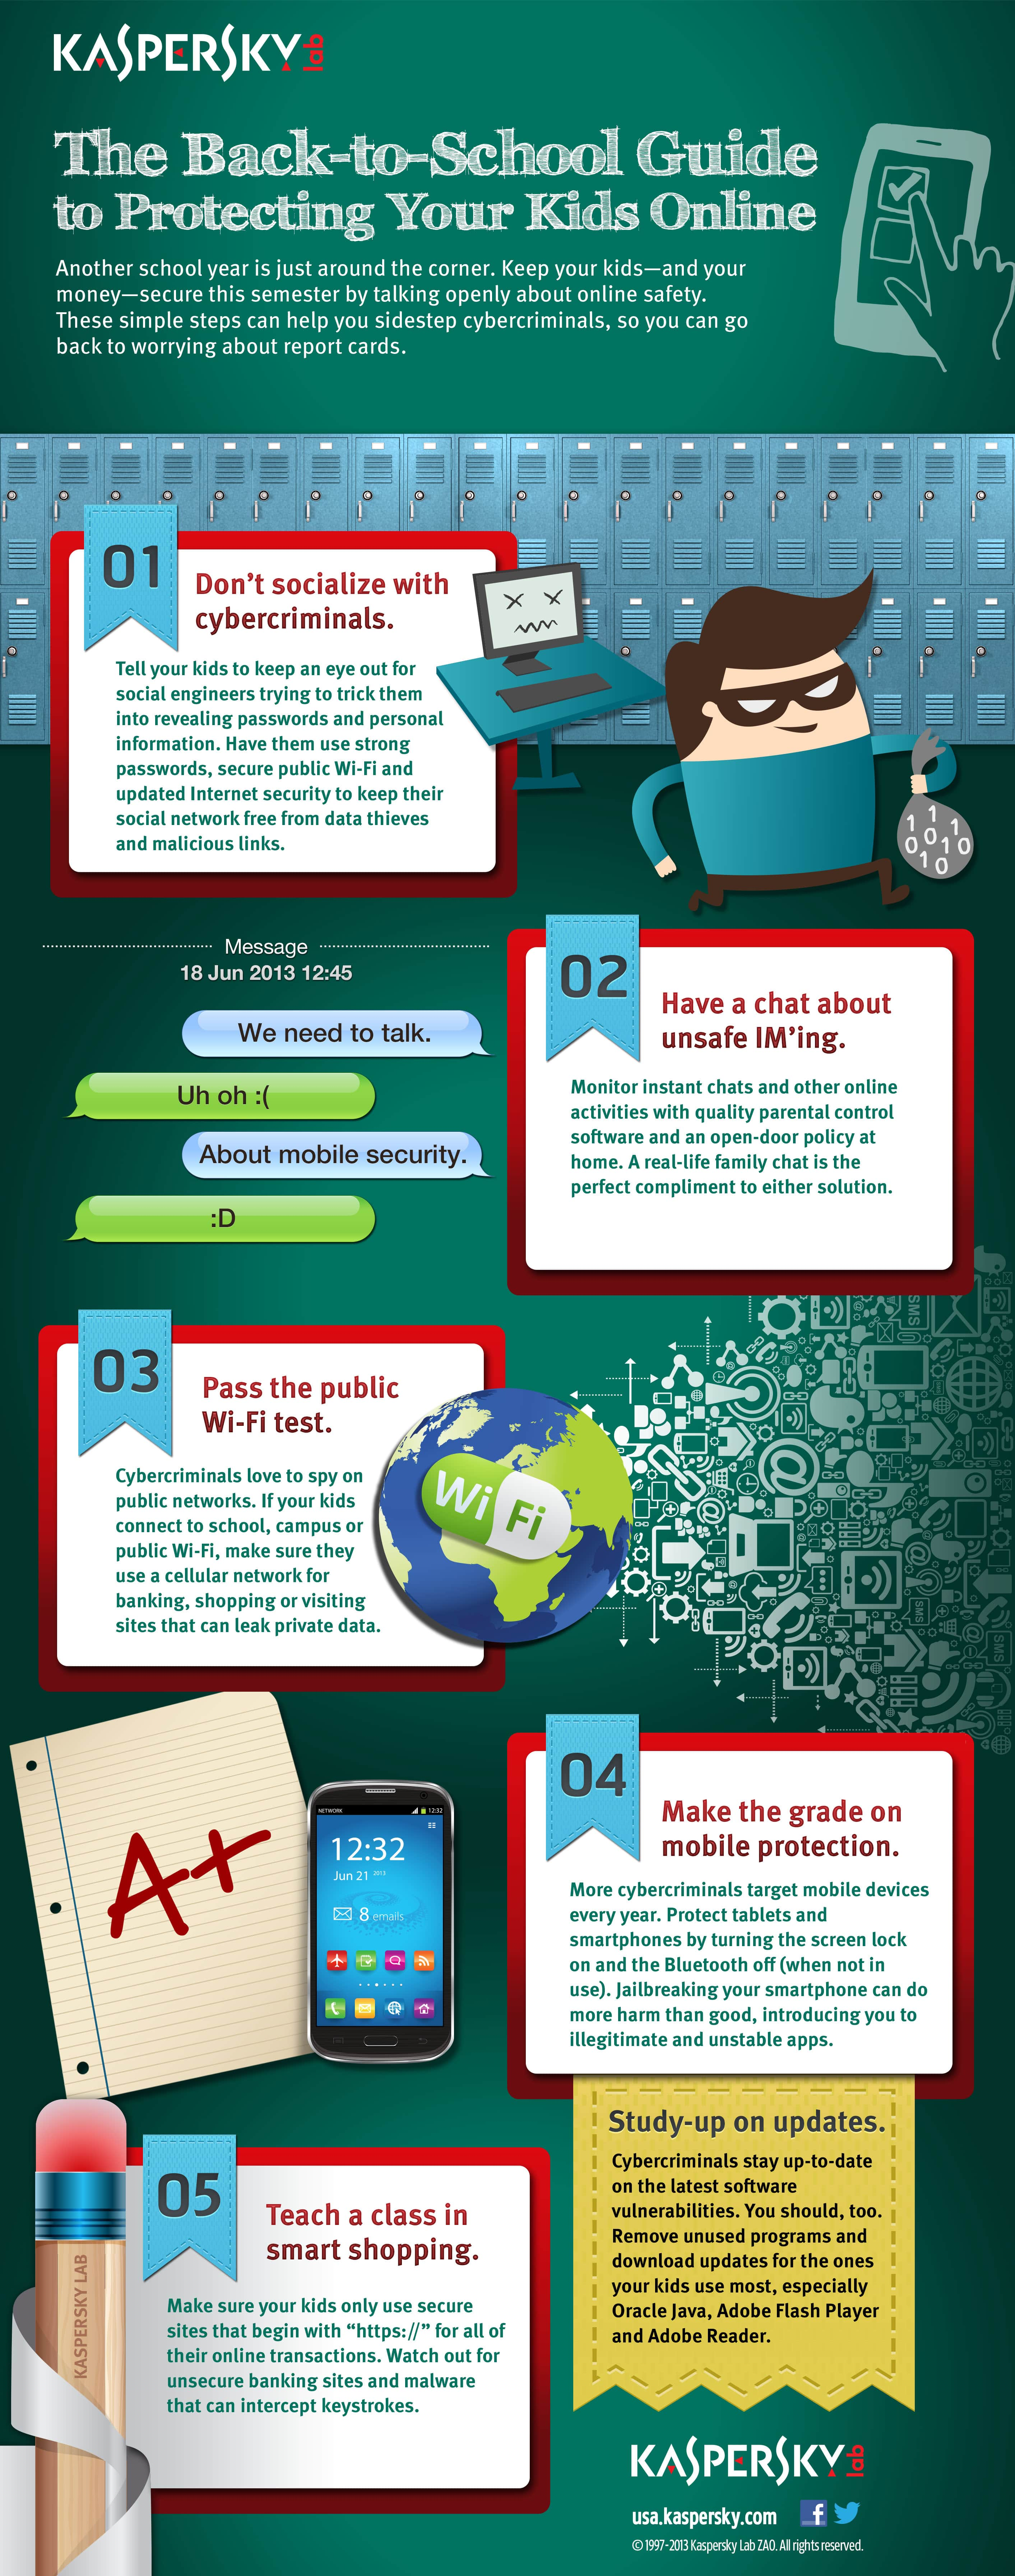 6 threats to the Internet: how to protect a child